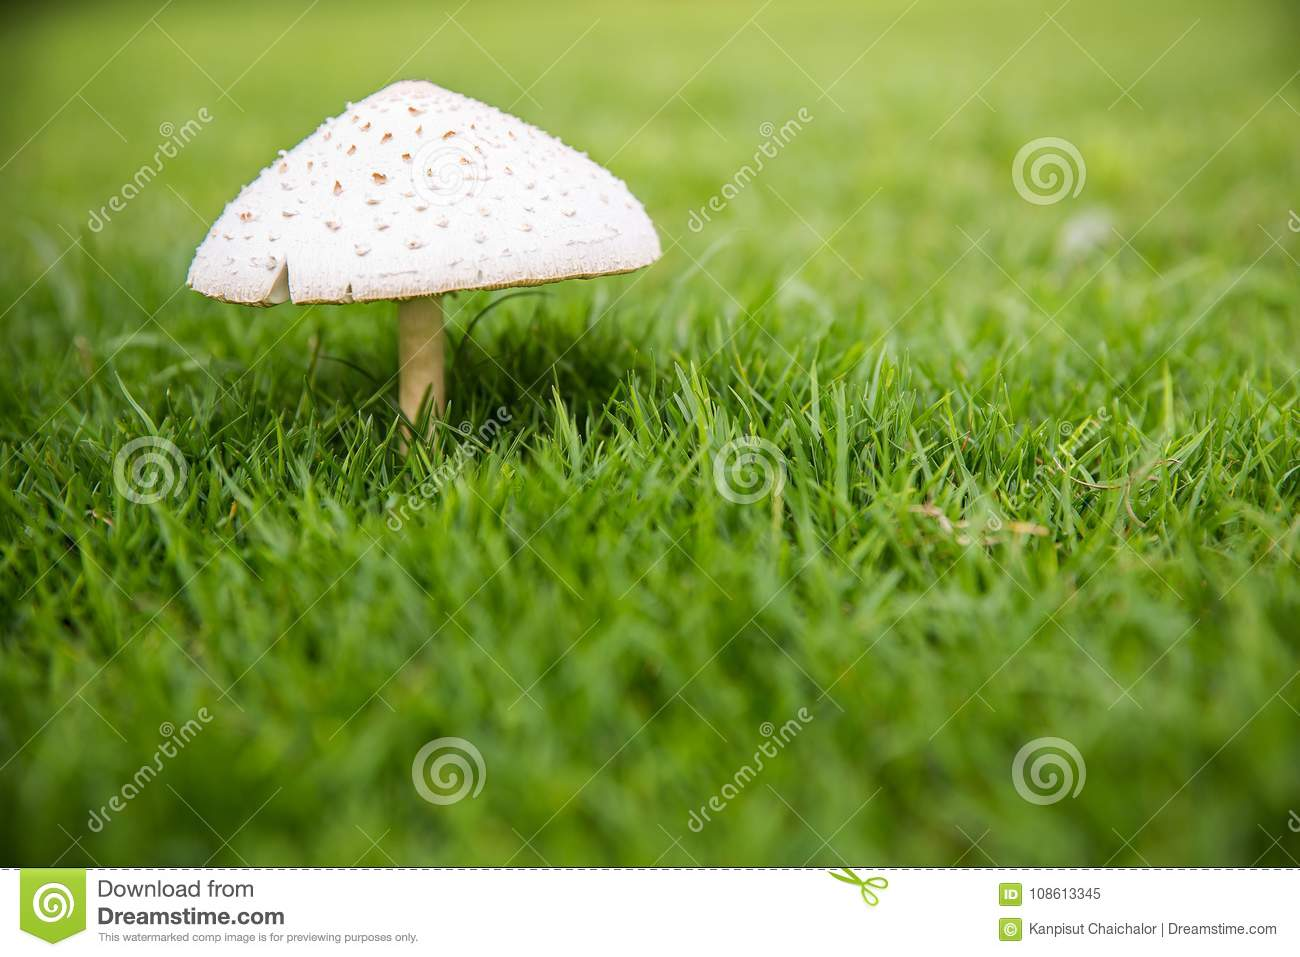 close up the white mushroom on the green grass backyard. natural